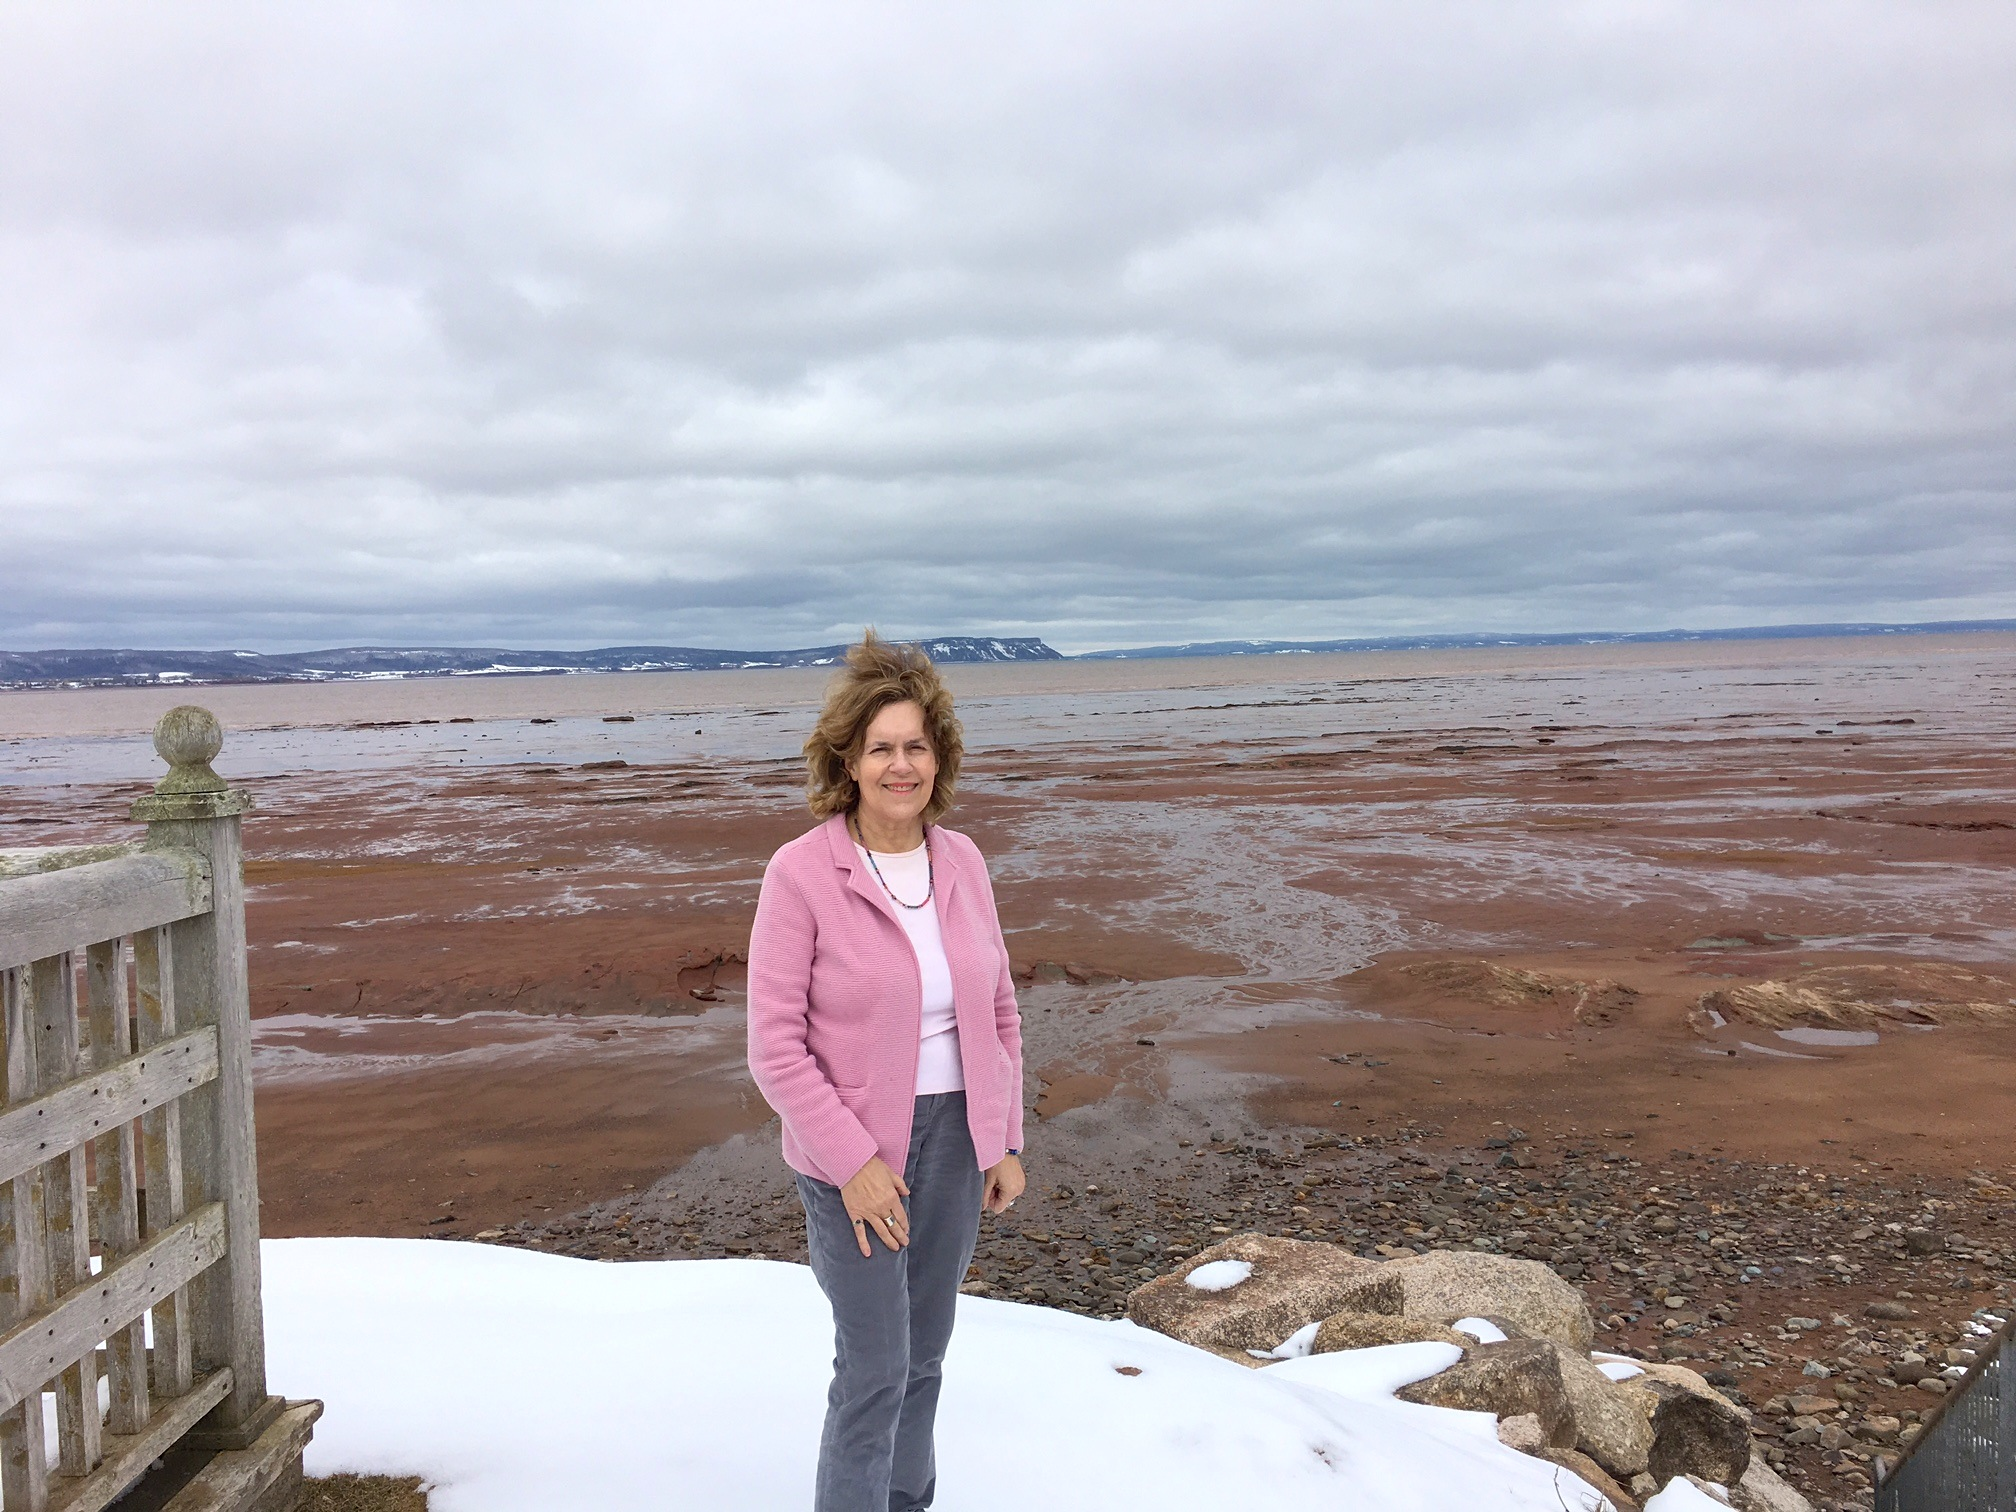 Lorraine Gudas at the Bay of Fundy, Nova Scotia